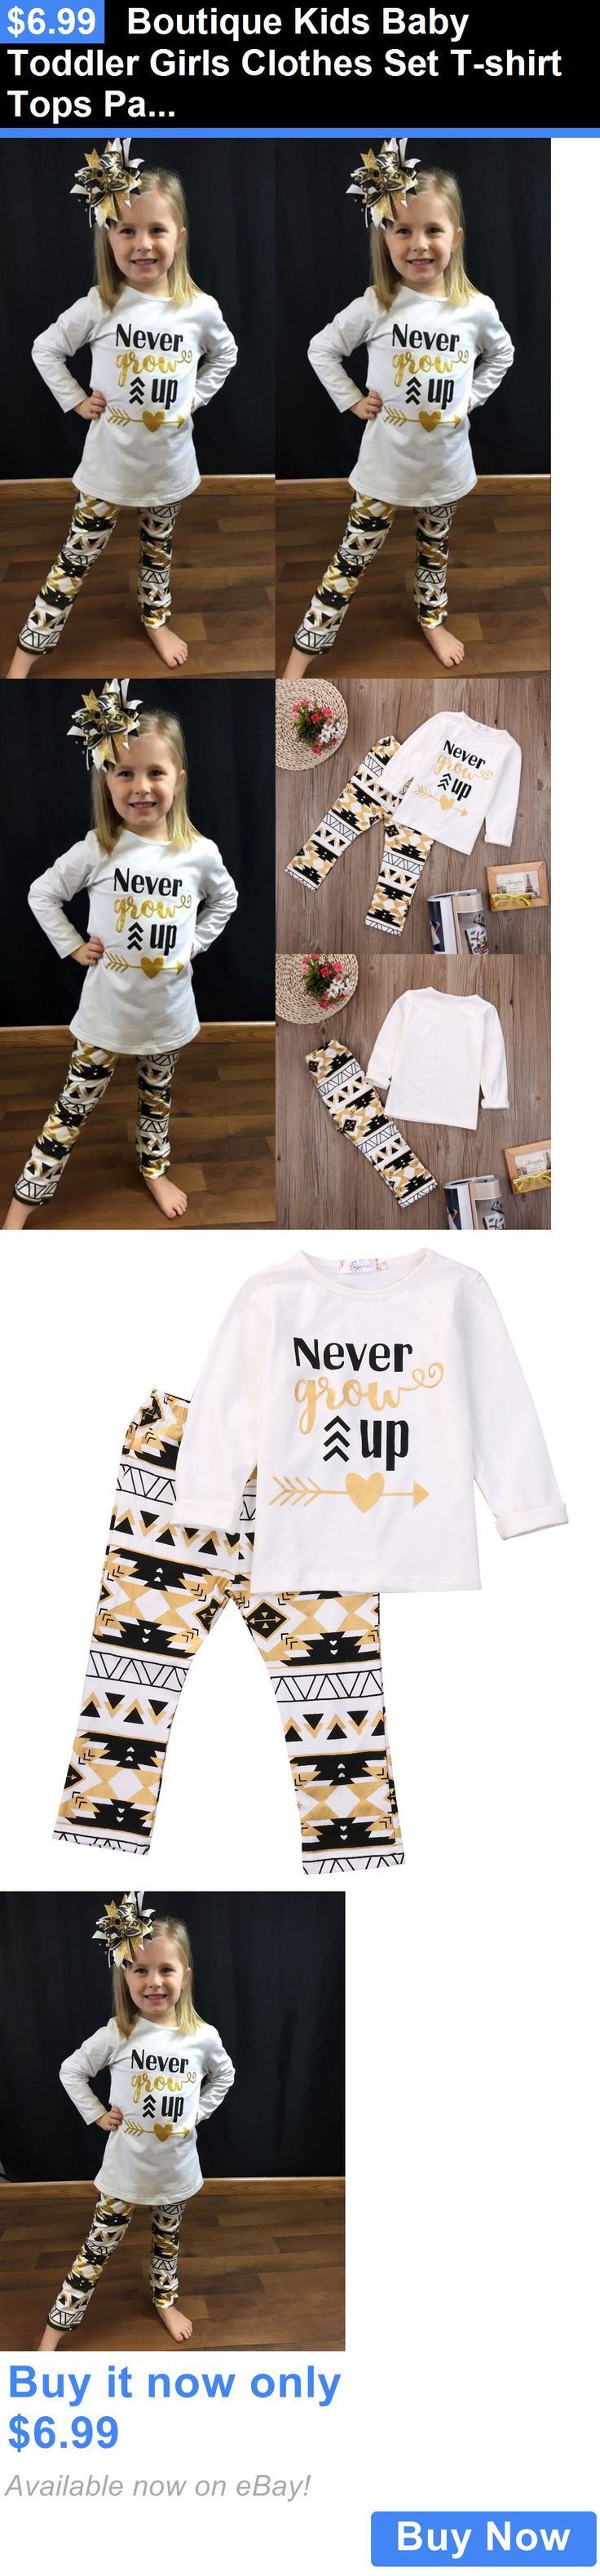 Baby Girls Clothing: Boutique Kids Baby Toddler Girls Clothes Set T-Shirt Tops Pants Leggings Outfits BUY IT NOW ONLY: $6.99